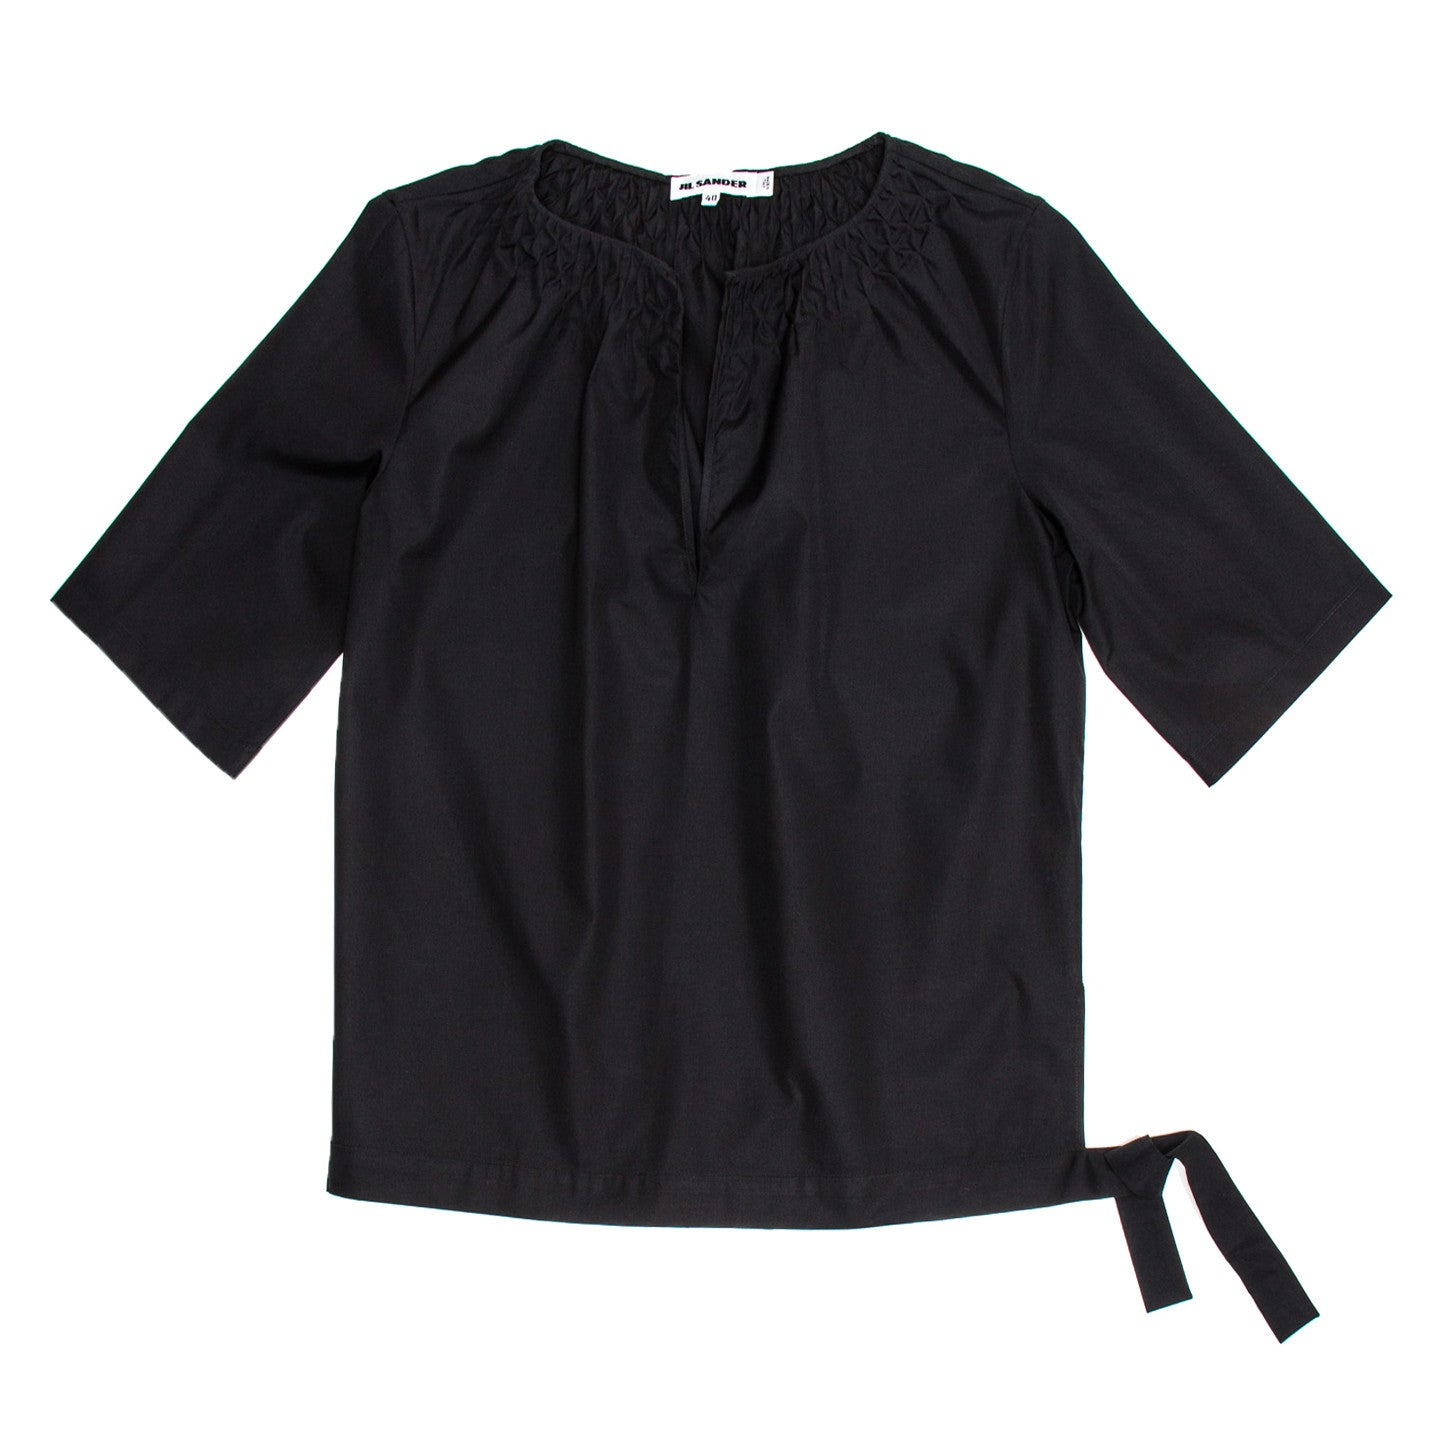 Find an authentic preowned Jil Sander Black Cotton Top, size 40 (French) at BunnyJack, where a portion of every sale goes to charity.